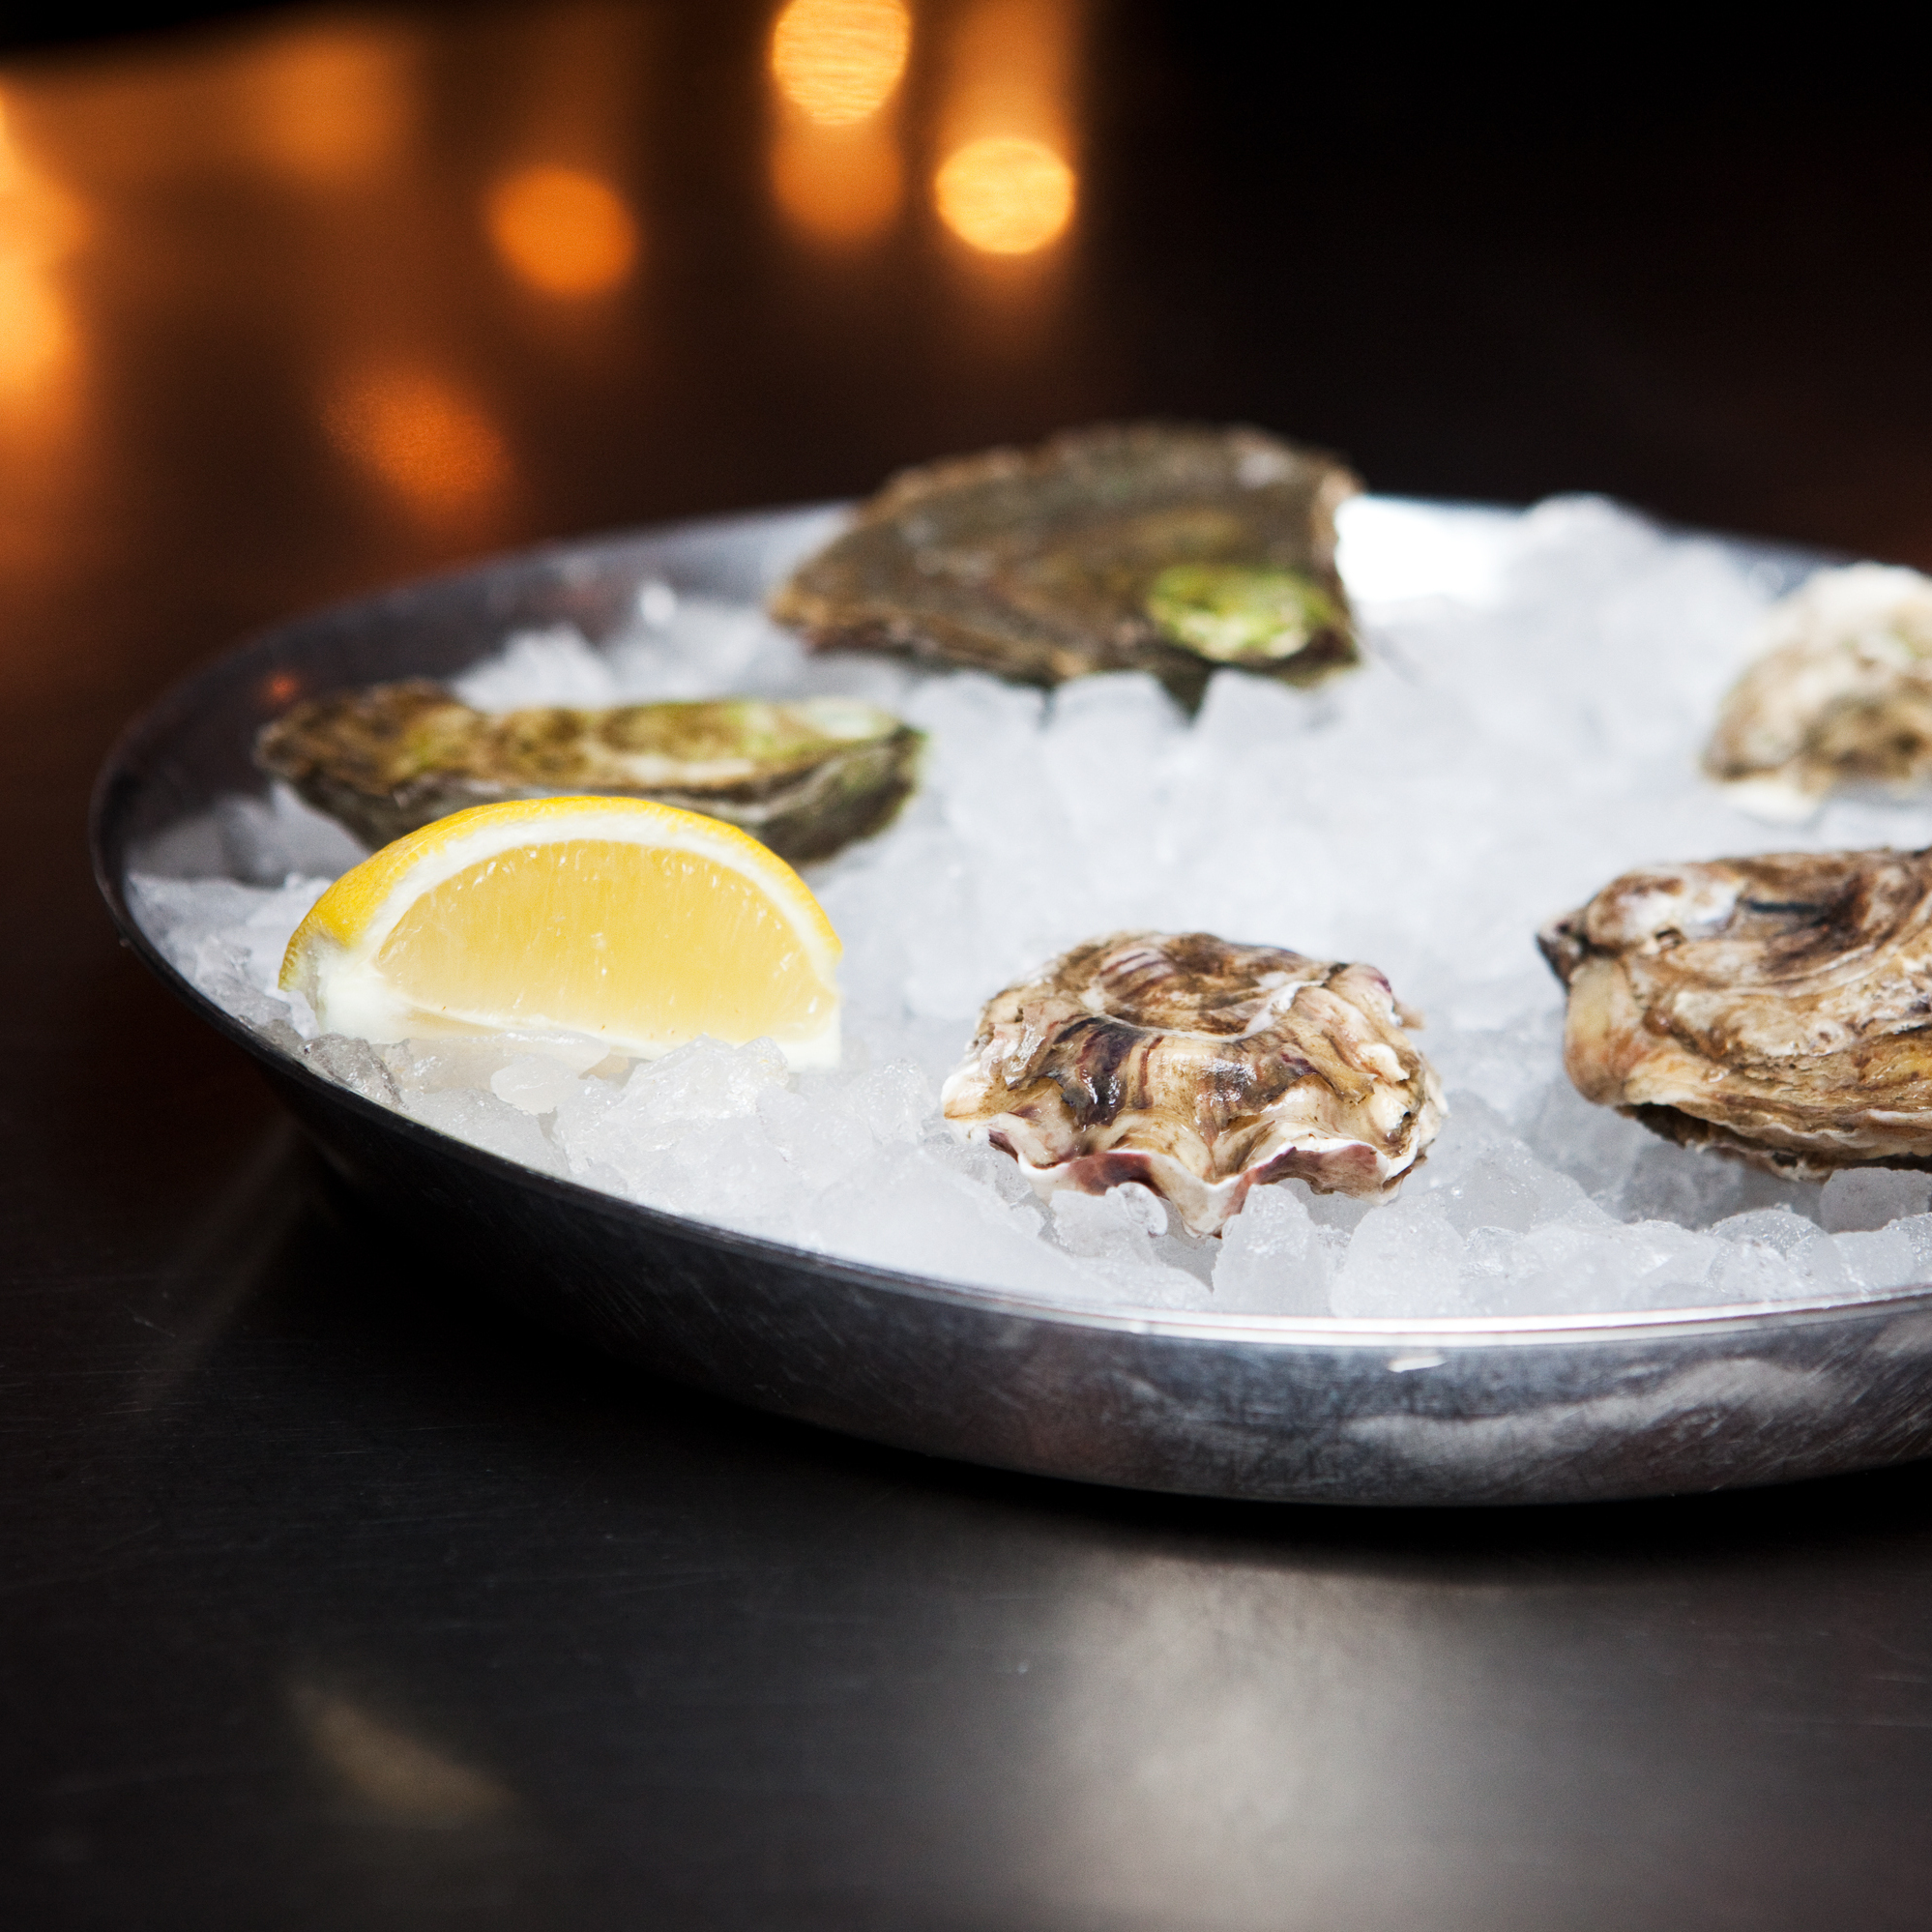 The stories linking oysters and other shellfish to lust go back to at least the ancient Greeks.